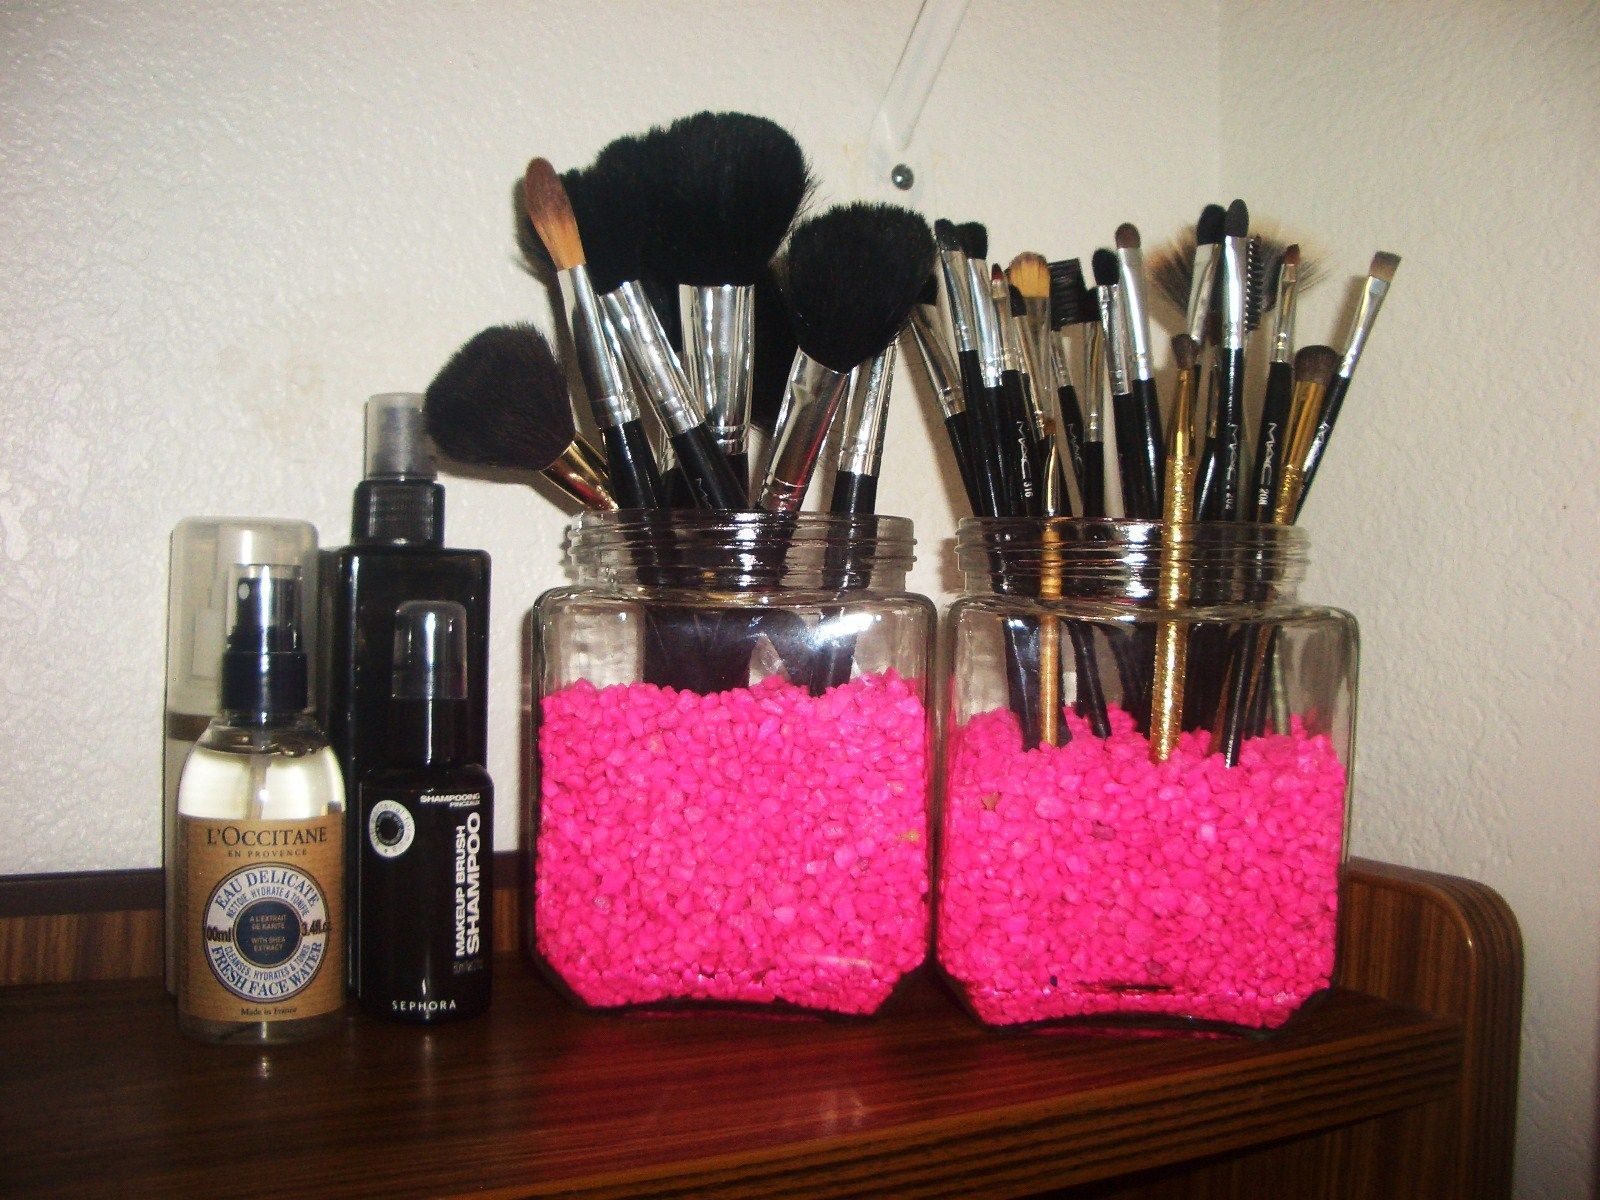 Homemade makeup organizer now they make nice decorative pieces in